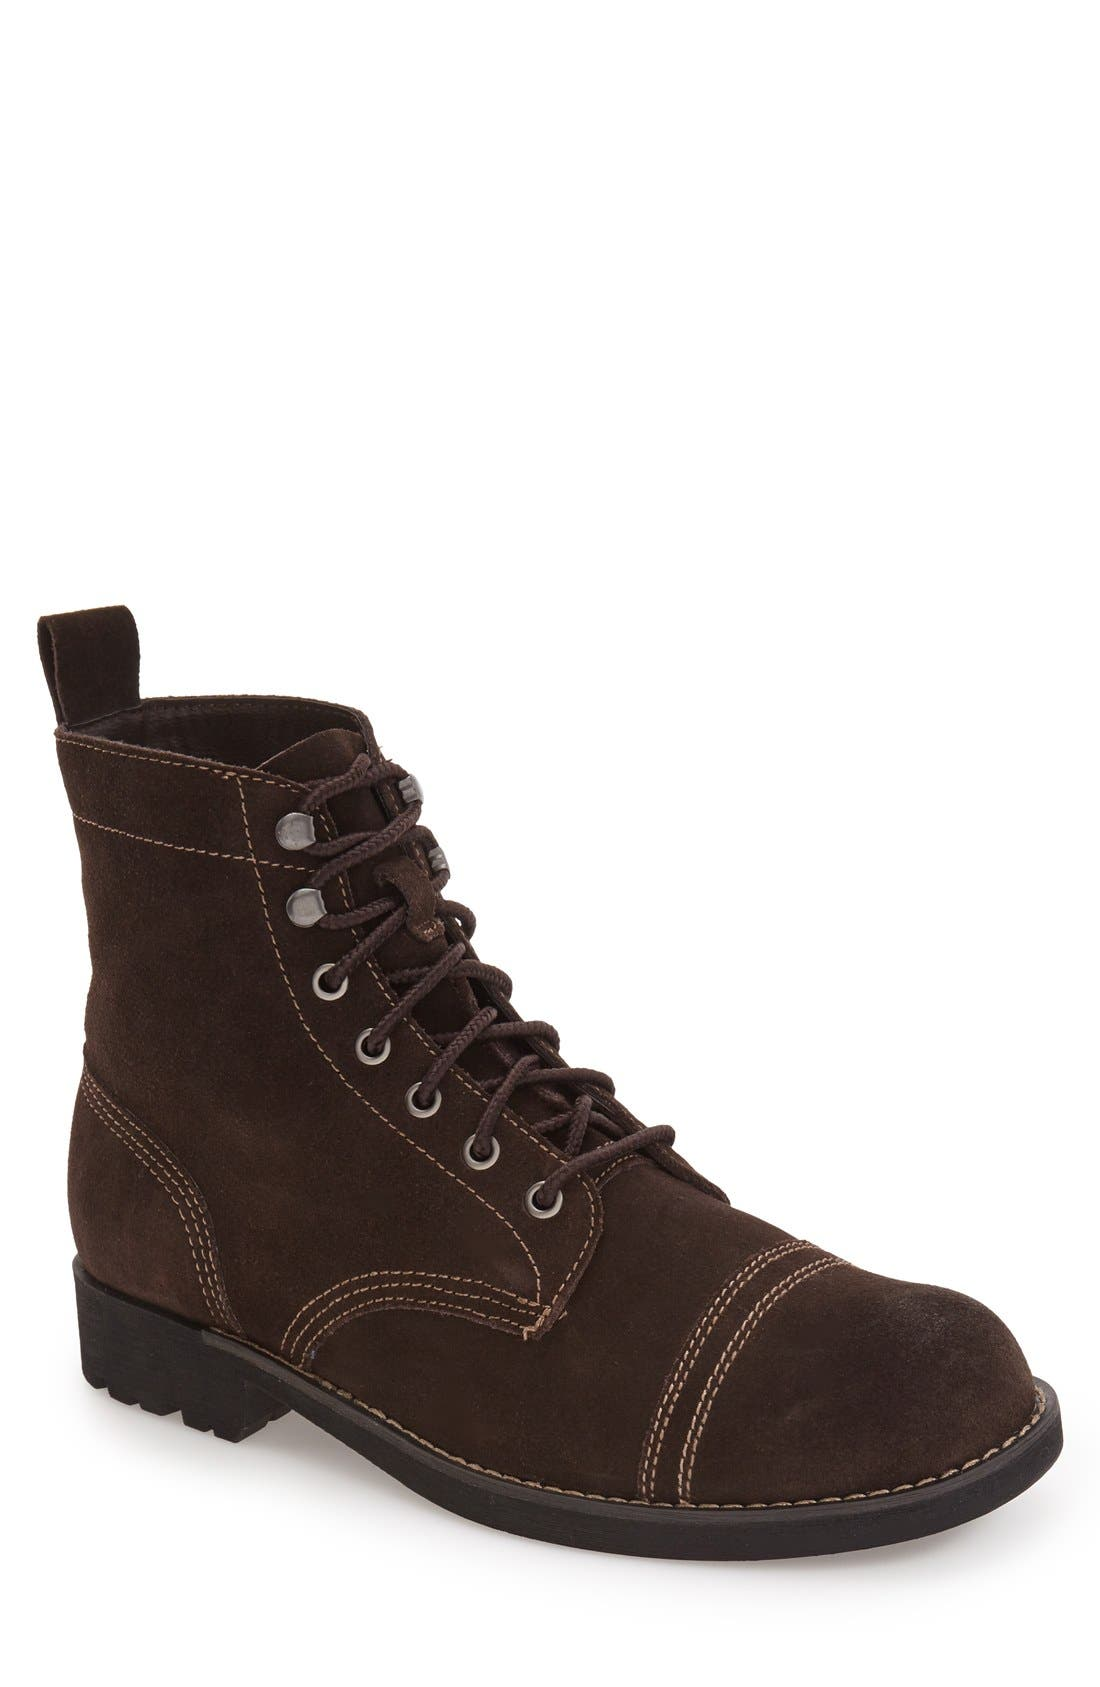 EASTLAND 'Jayce' Cap Toe Boot